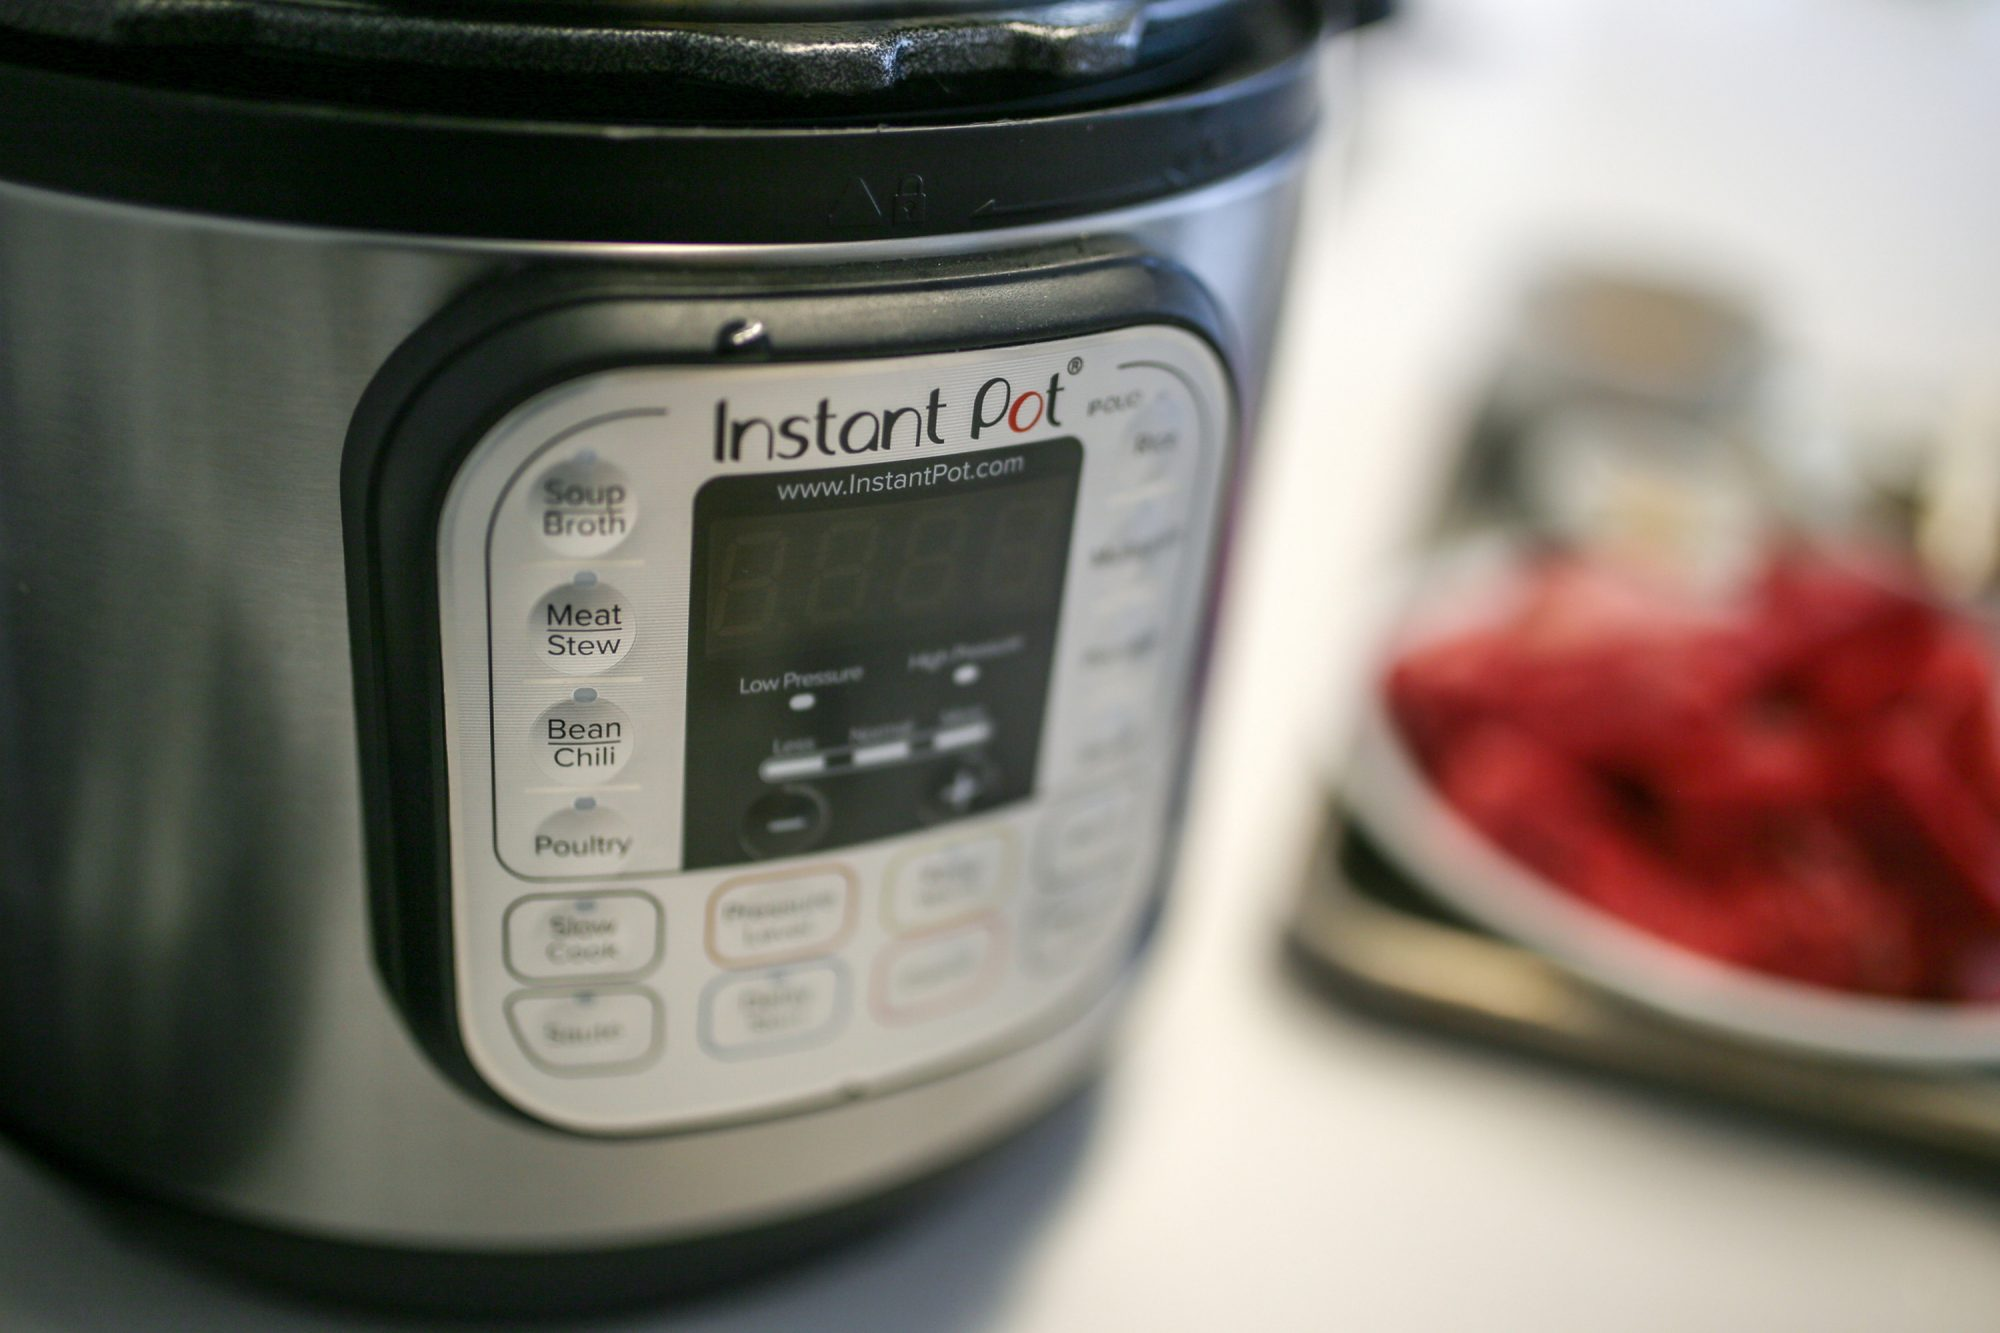 If You Have an Instant Pot, You're Gonna Want These Accessories